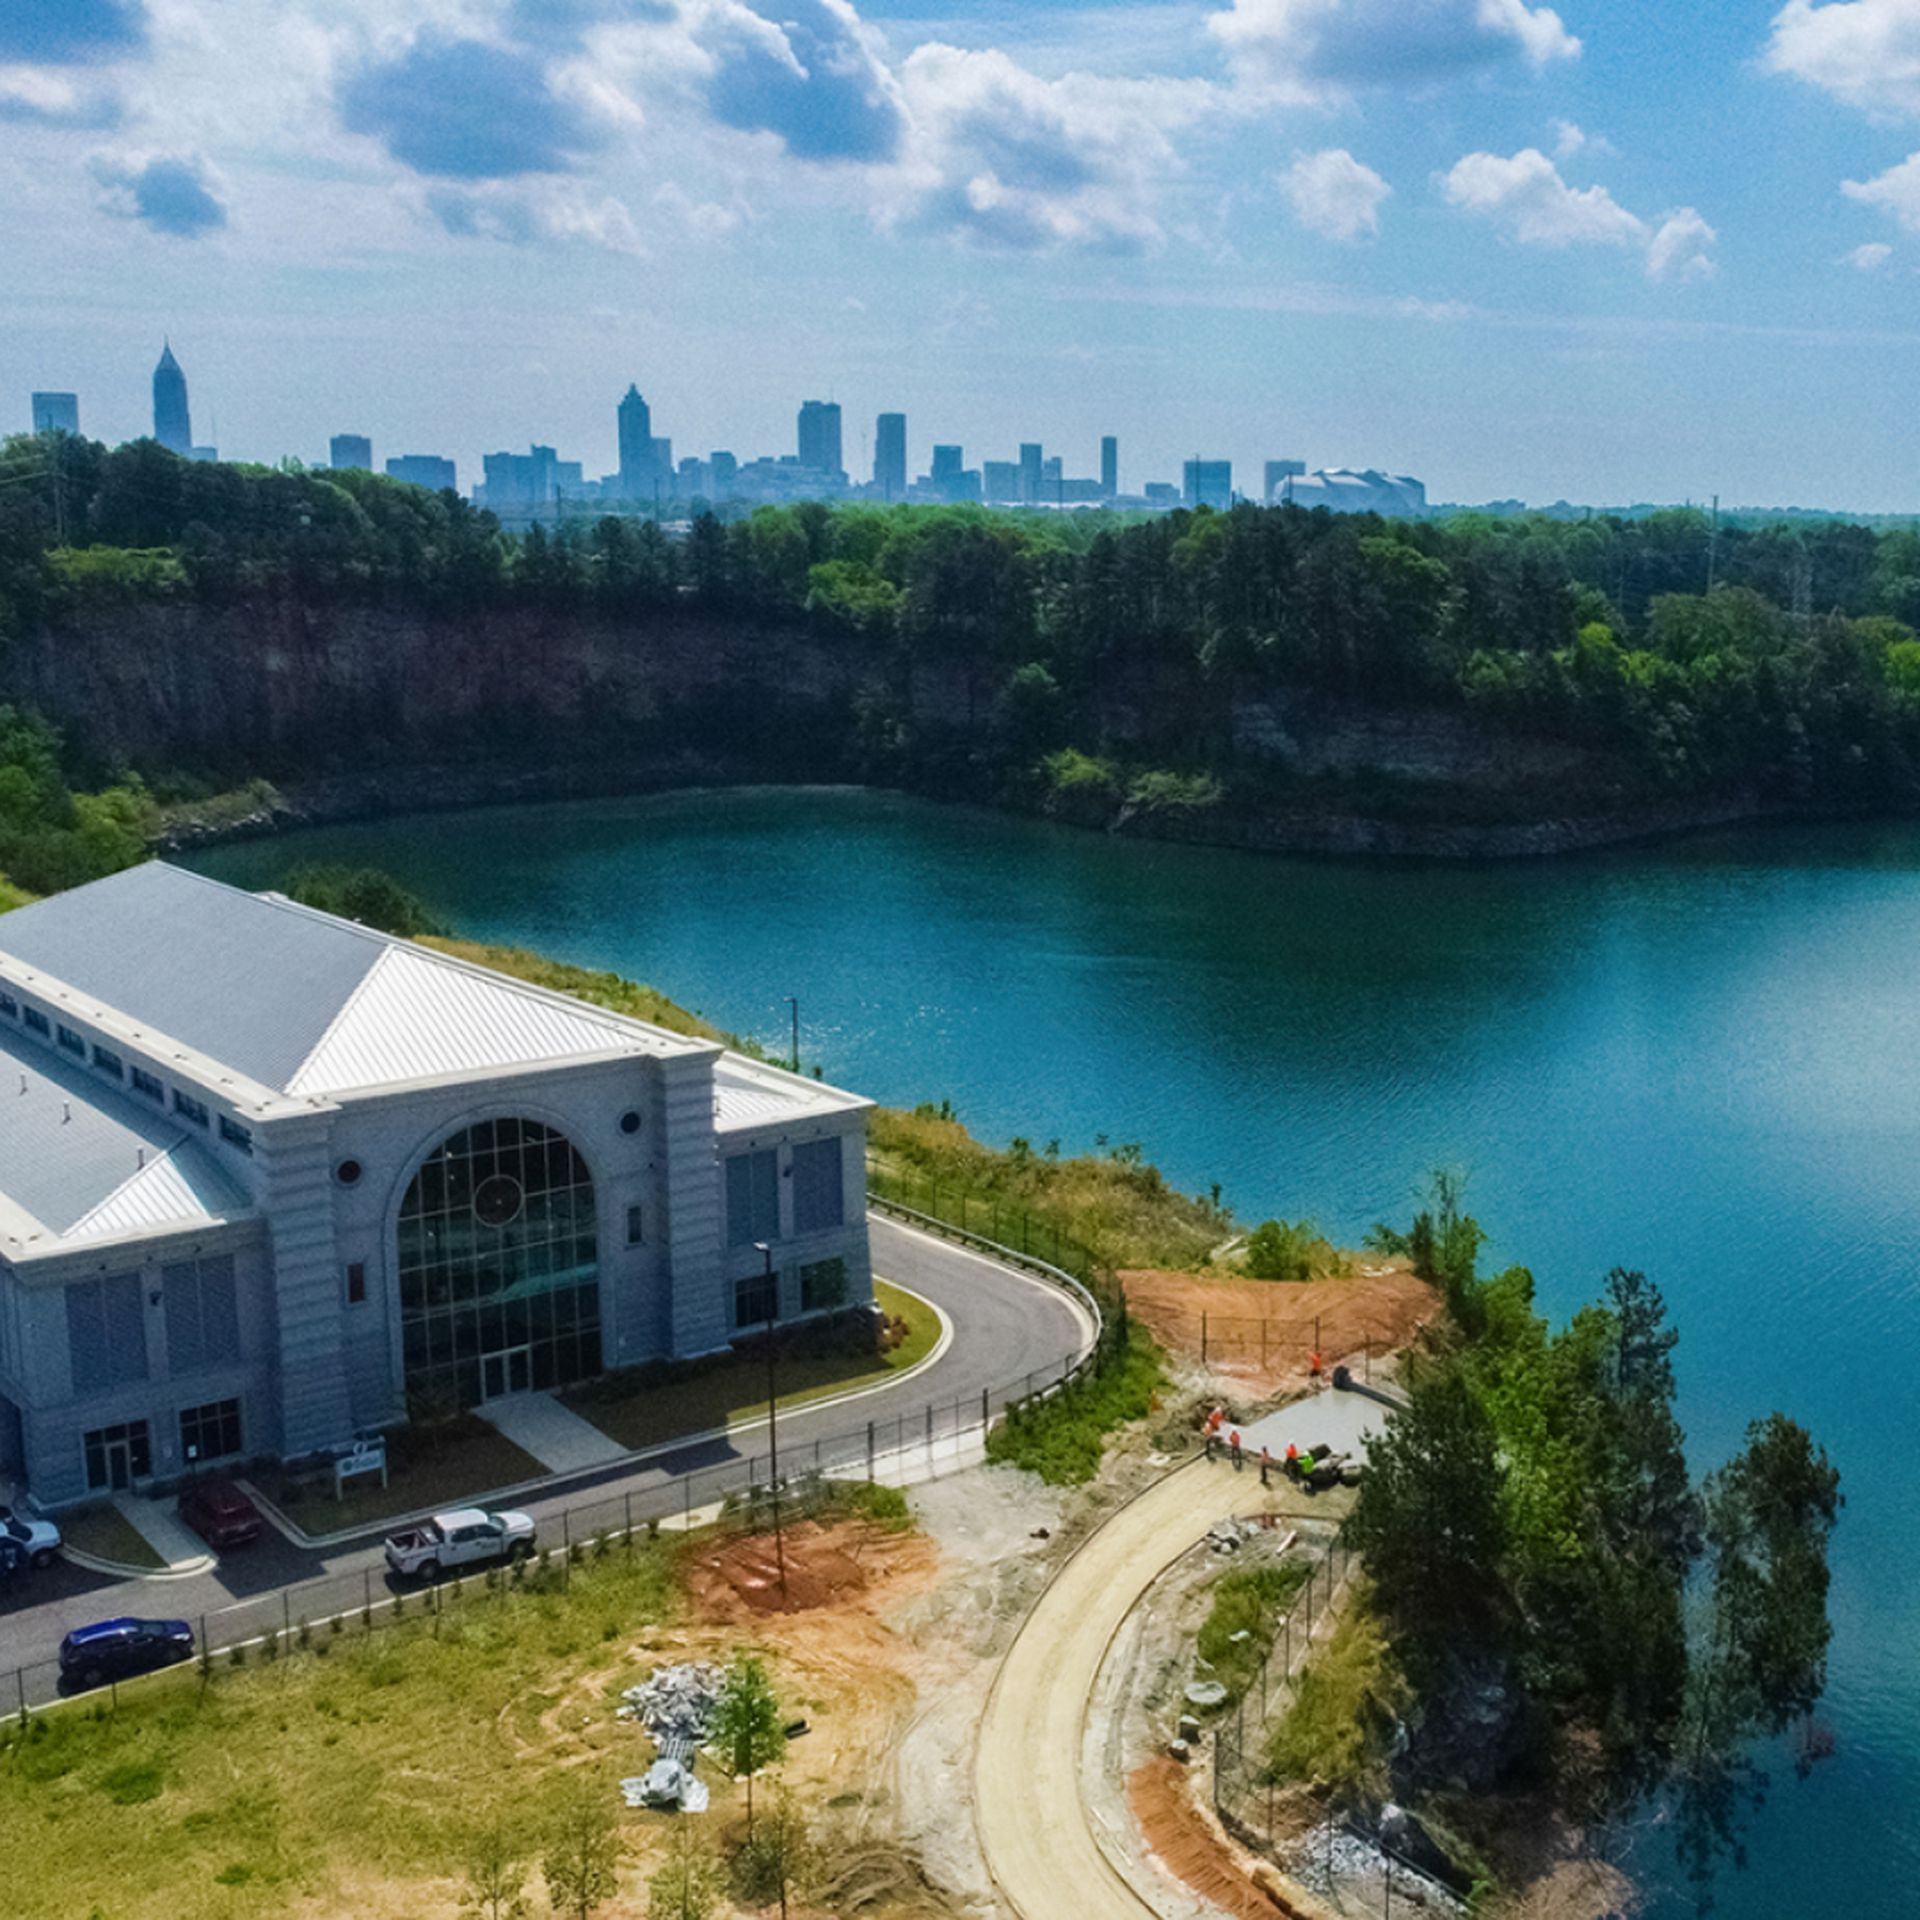 A building overlooks a giant reservoir with the Atlanta skyline in the background